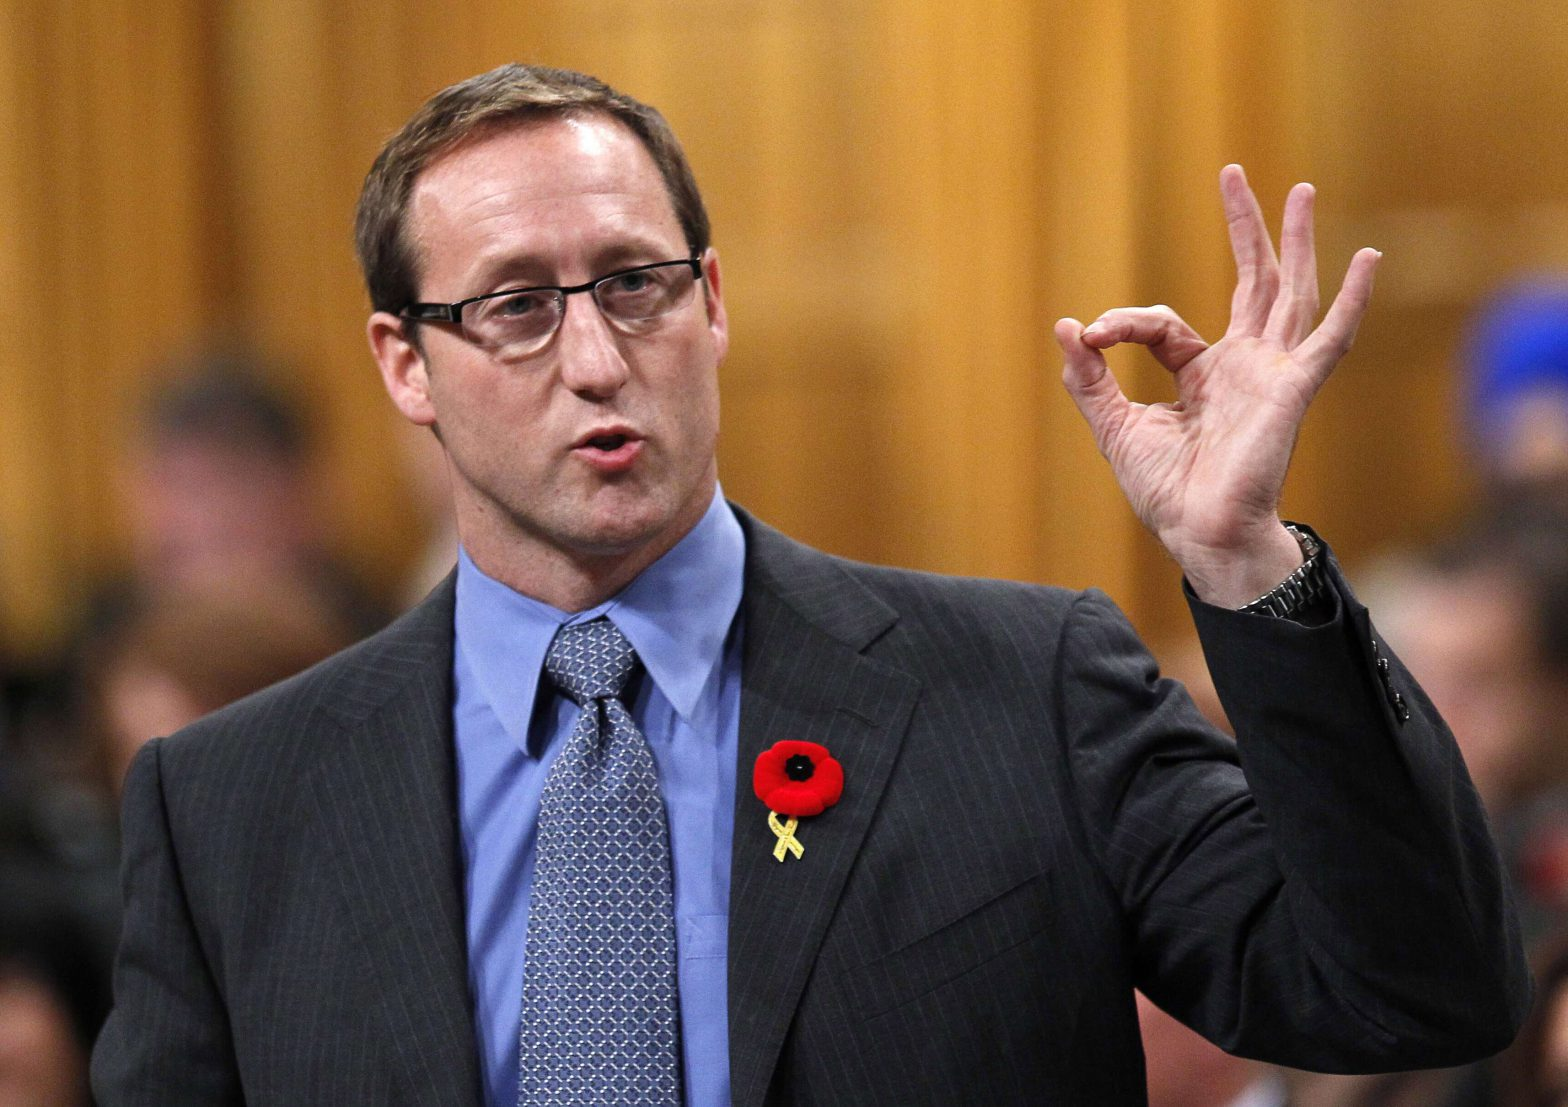 Peter MacKay, in context